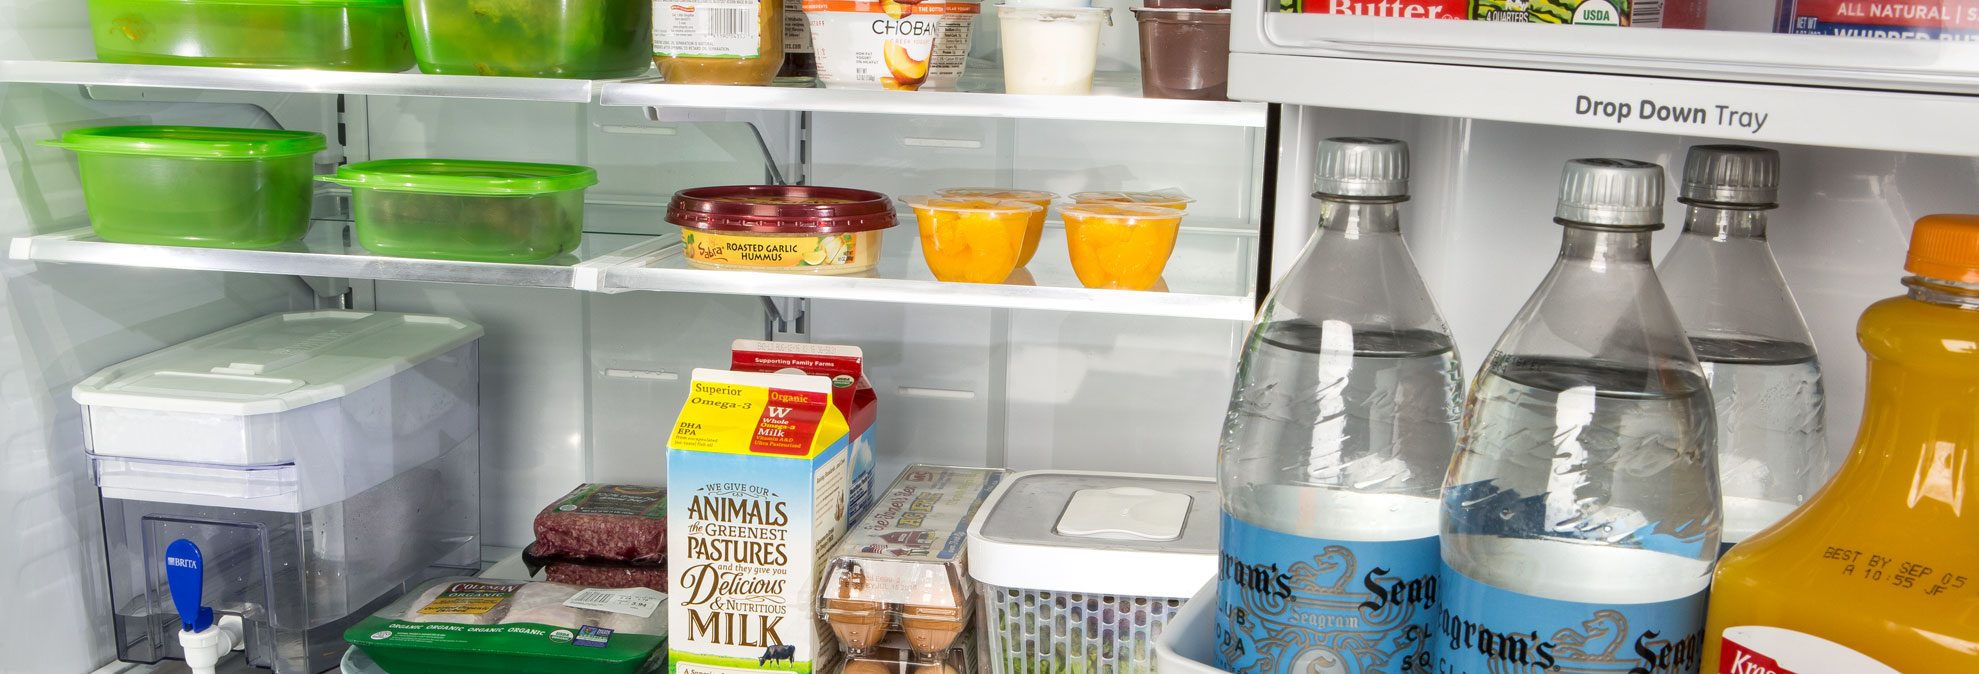 What is the advantage of two-chamber refrigerators